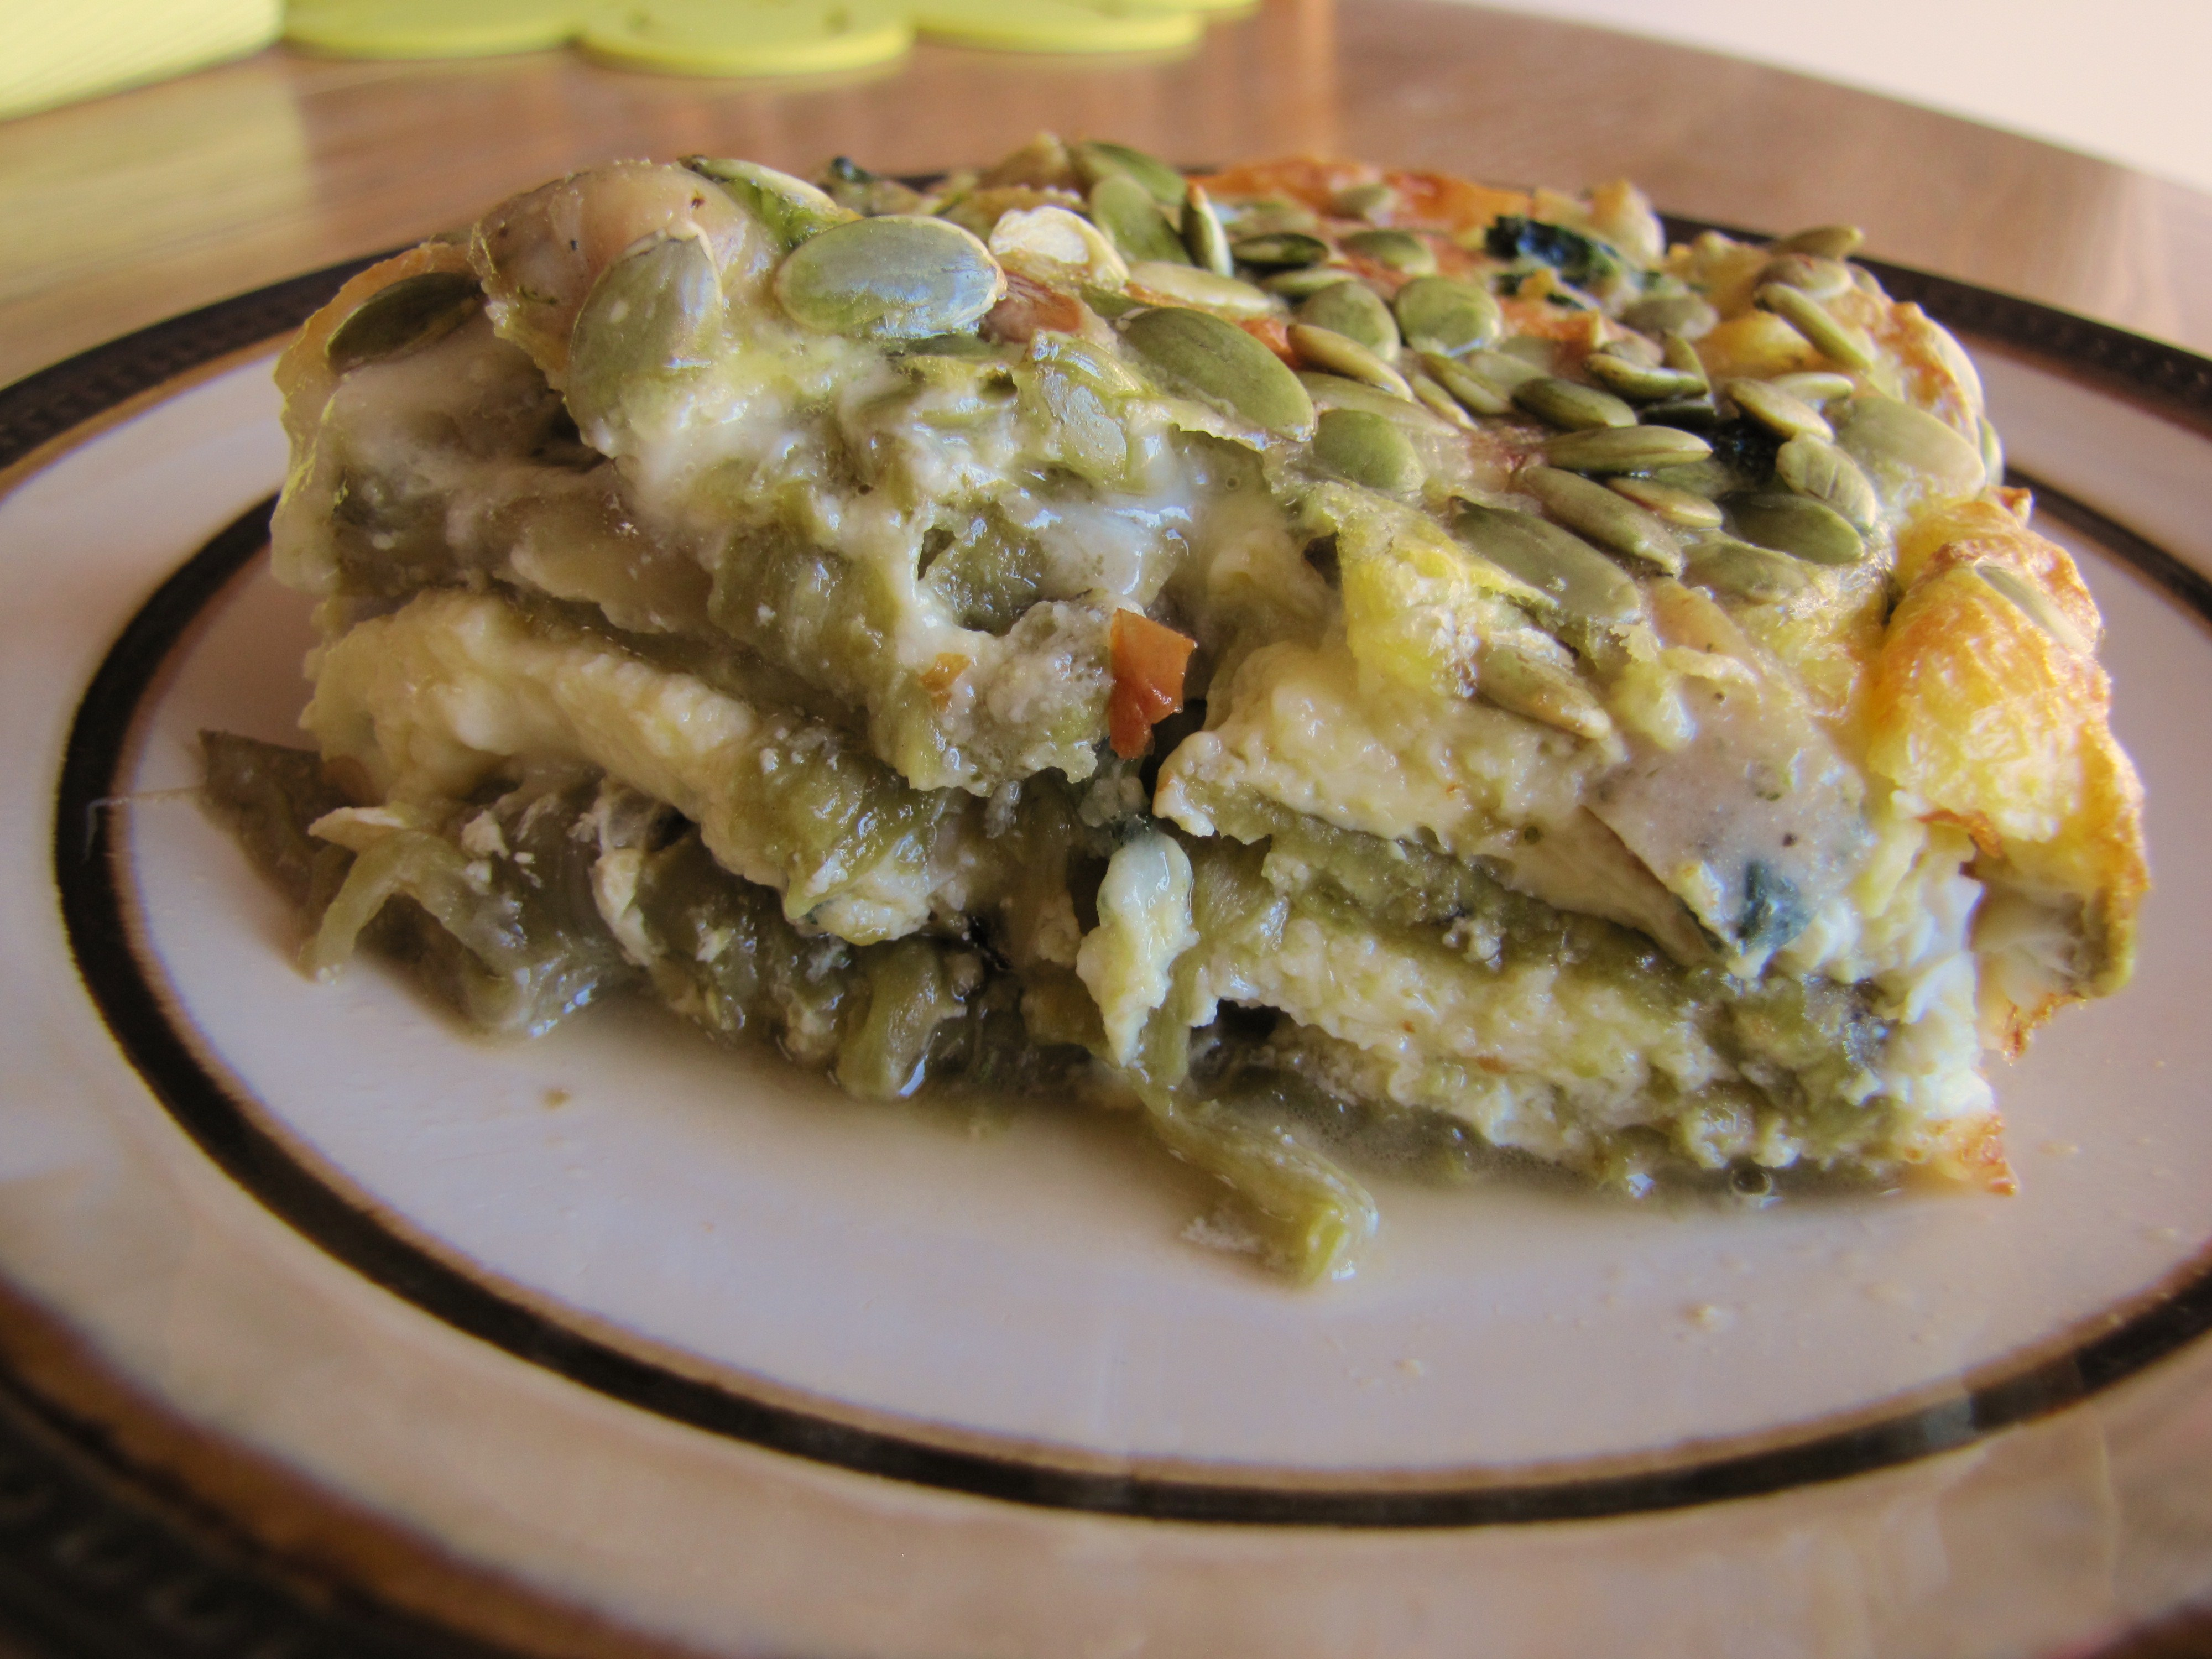 Layers of roasted green chilies, cheese and eggs...yum